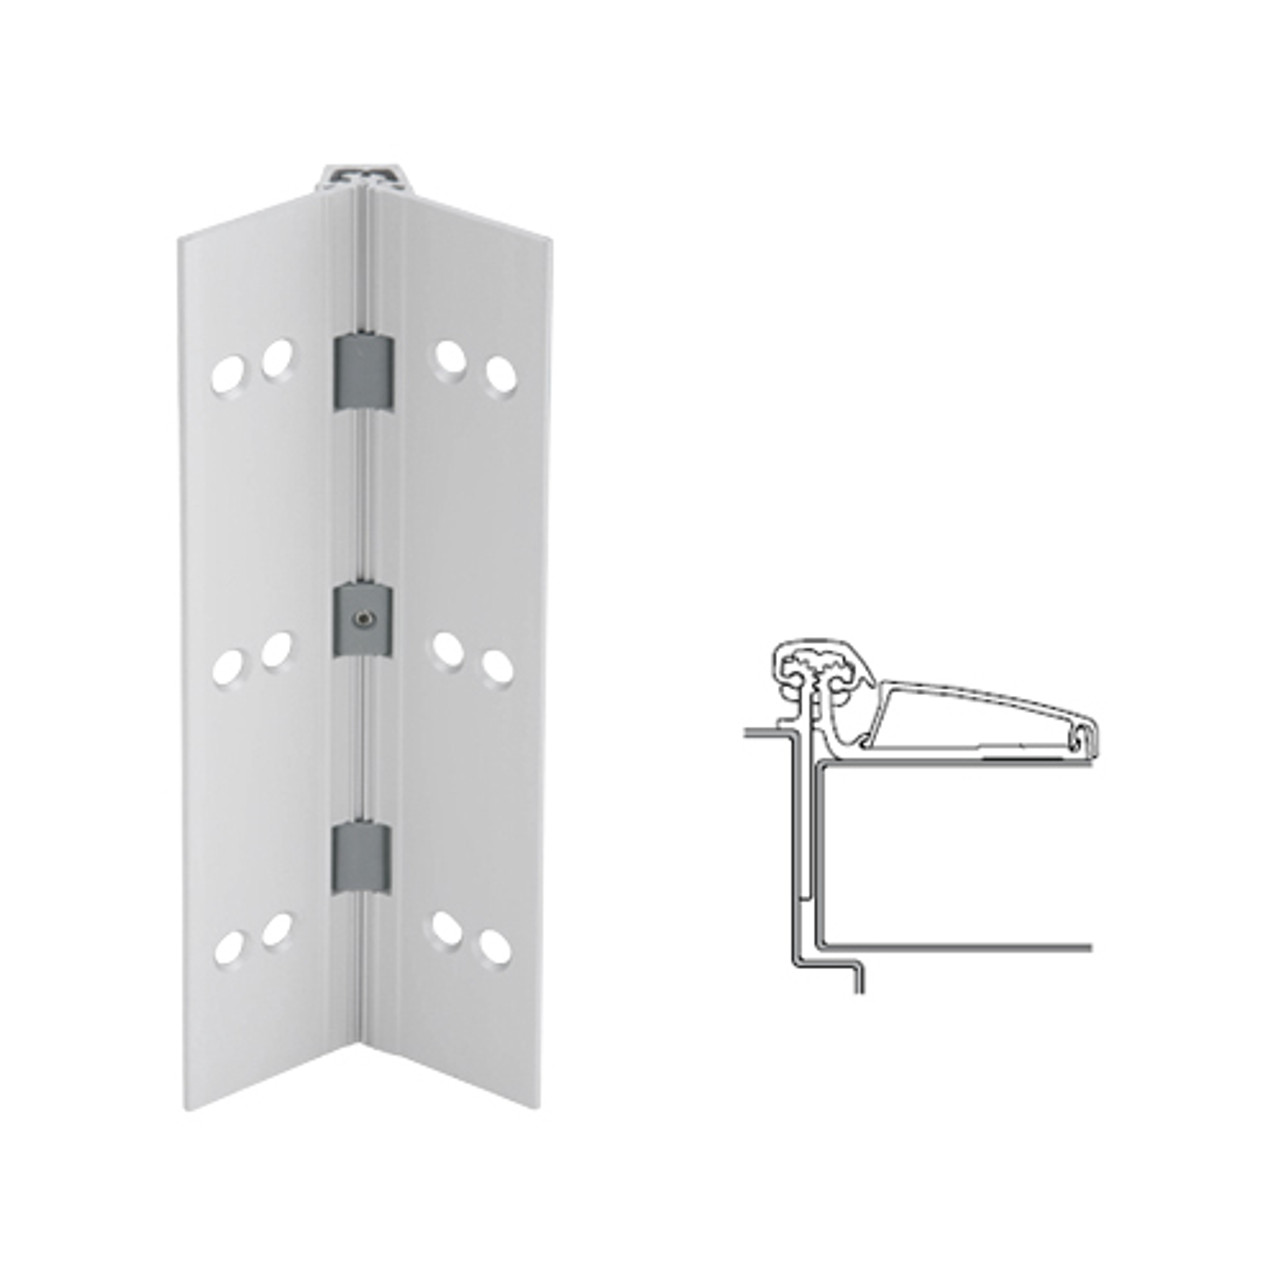 045XY-US28-120-SECWDWD IVES Adjustable Half Surface Continuous Geared Hinges with Security Screws - Hex Pin Drive in Satin Aluminum